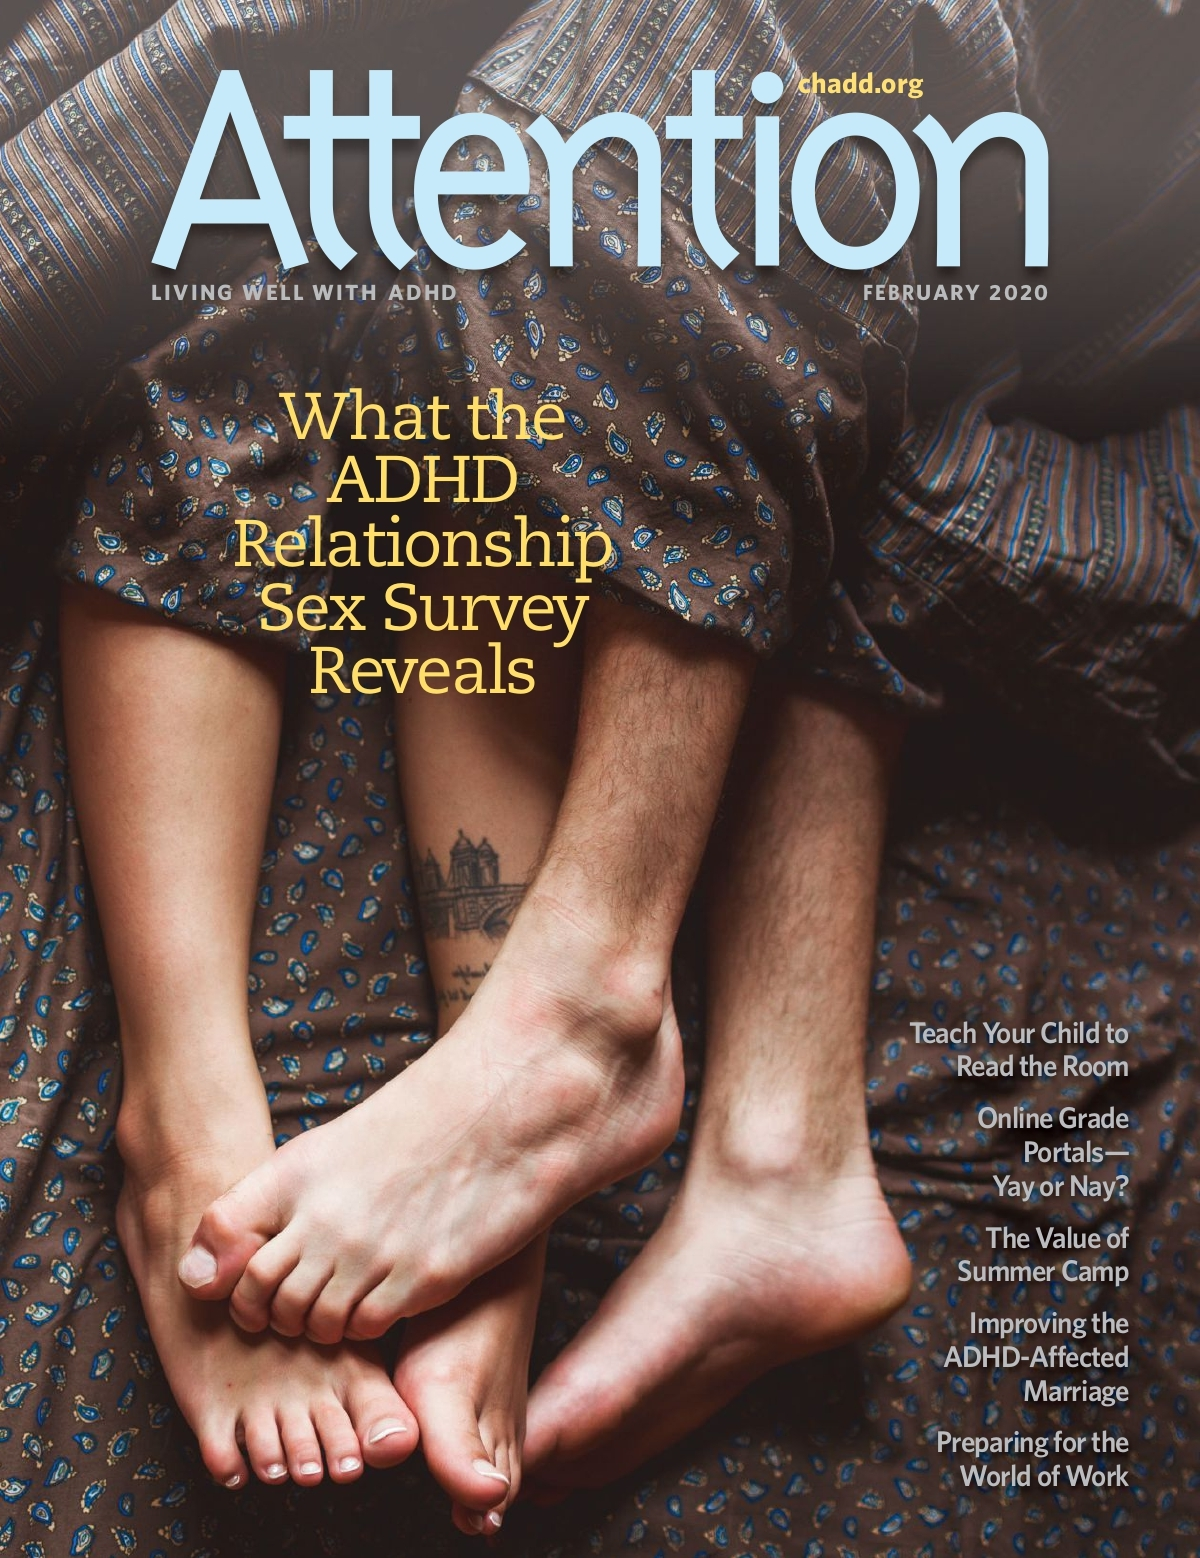 Attention Magazine February 2020